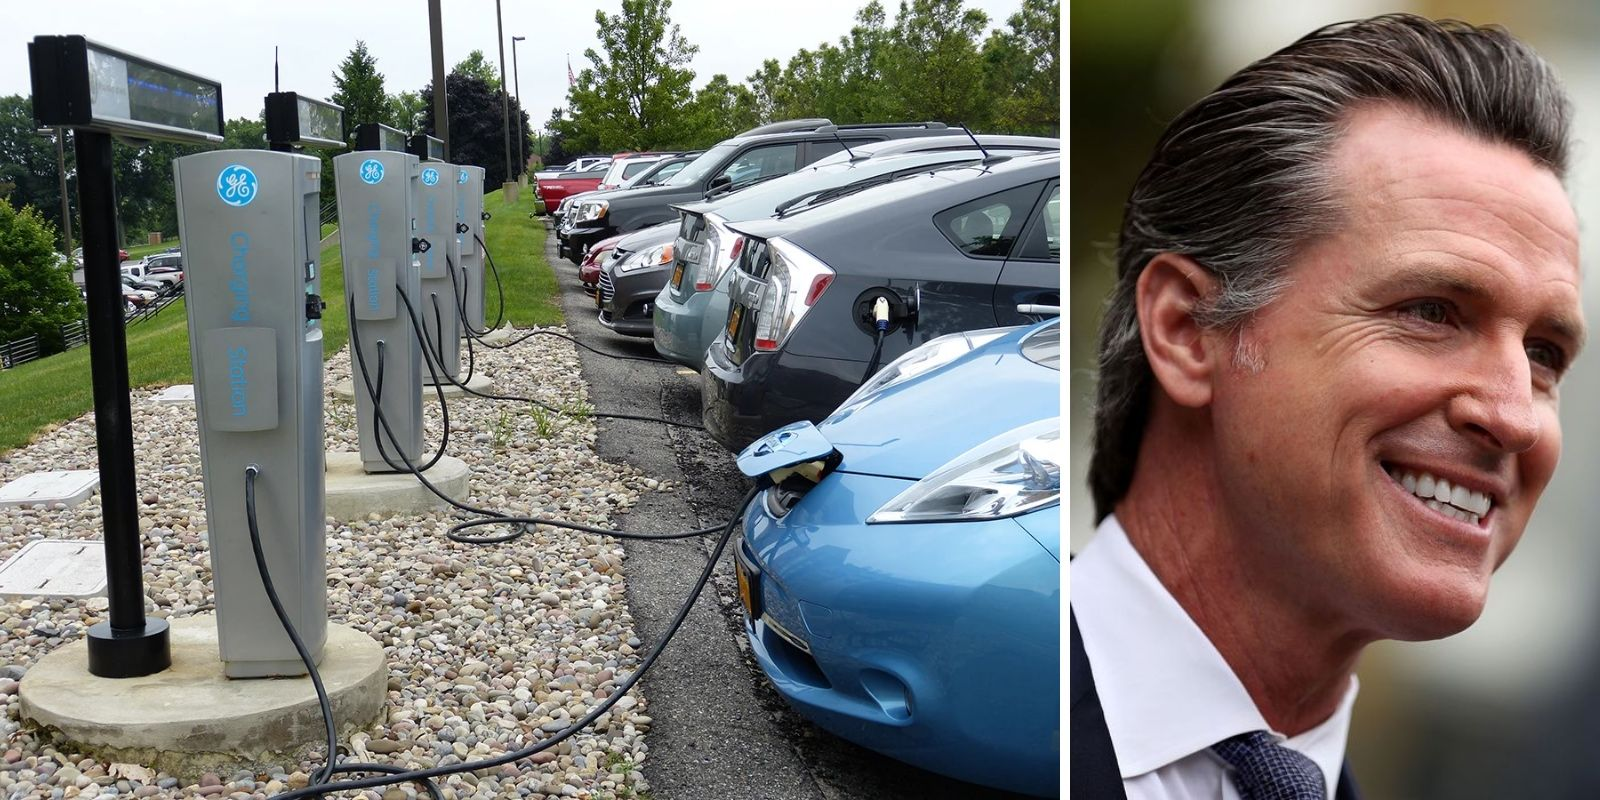 California to ban sales of gas powered cars by 2035